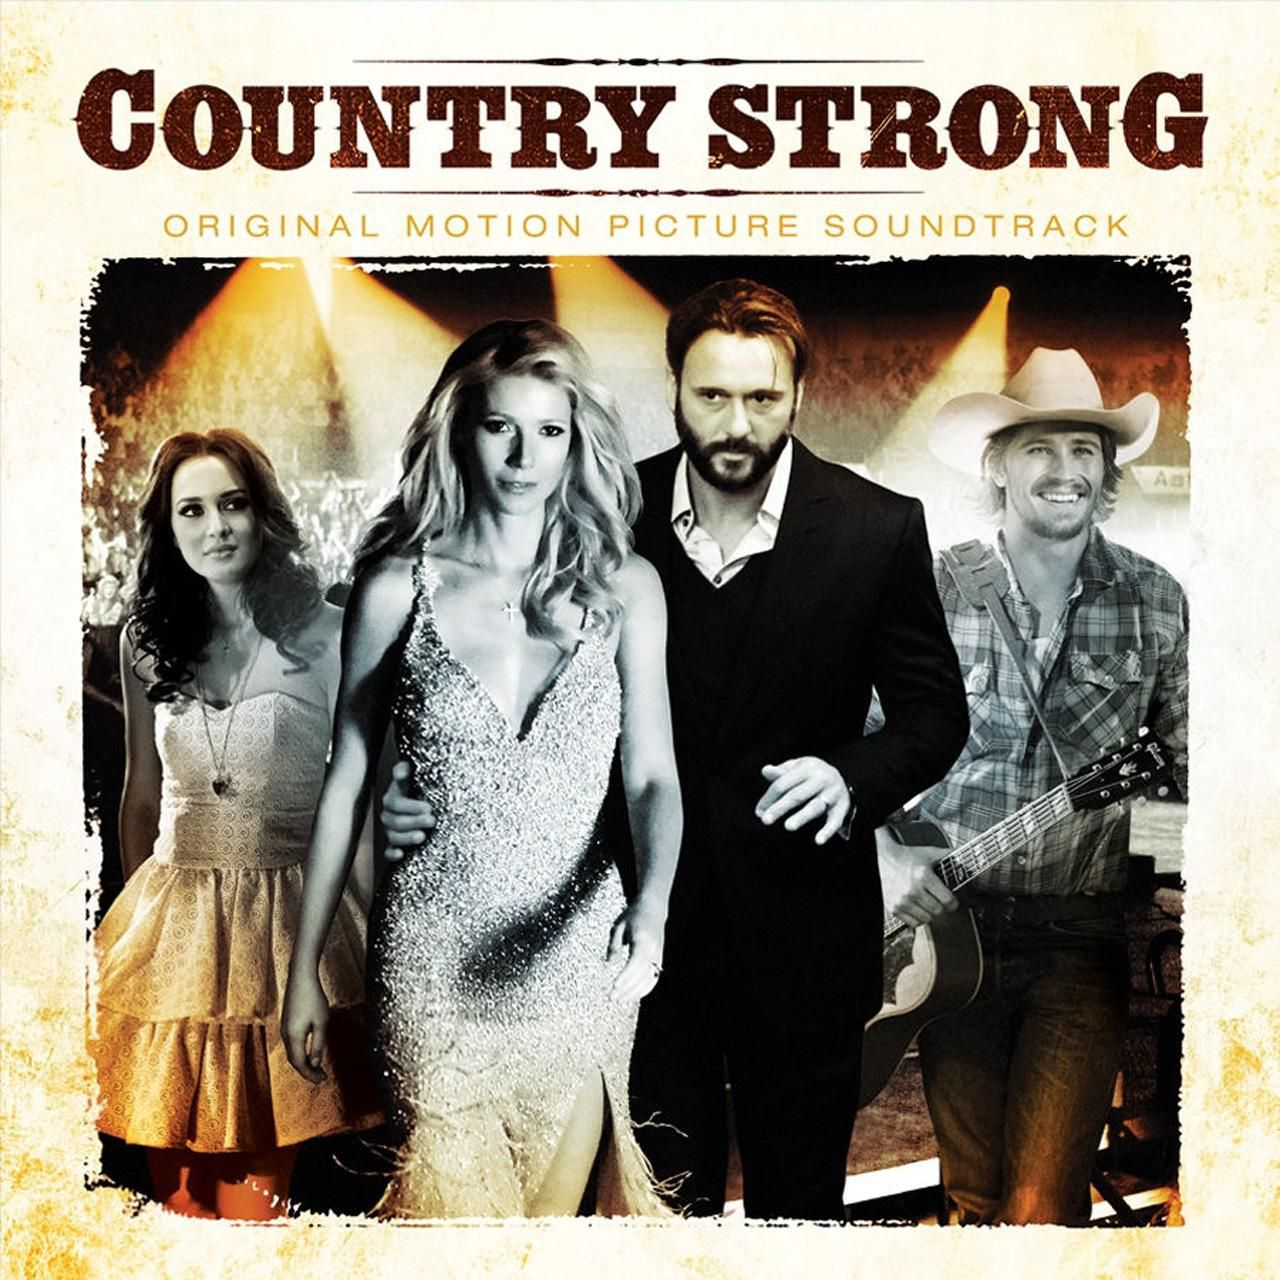 Who Sings What Songs On The Country Strong Movie Soundtrack